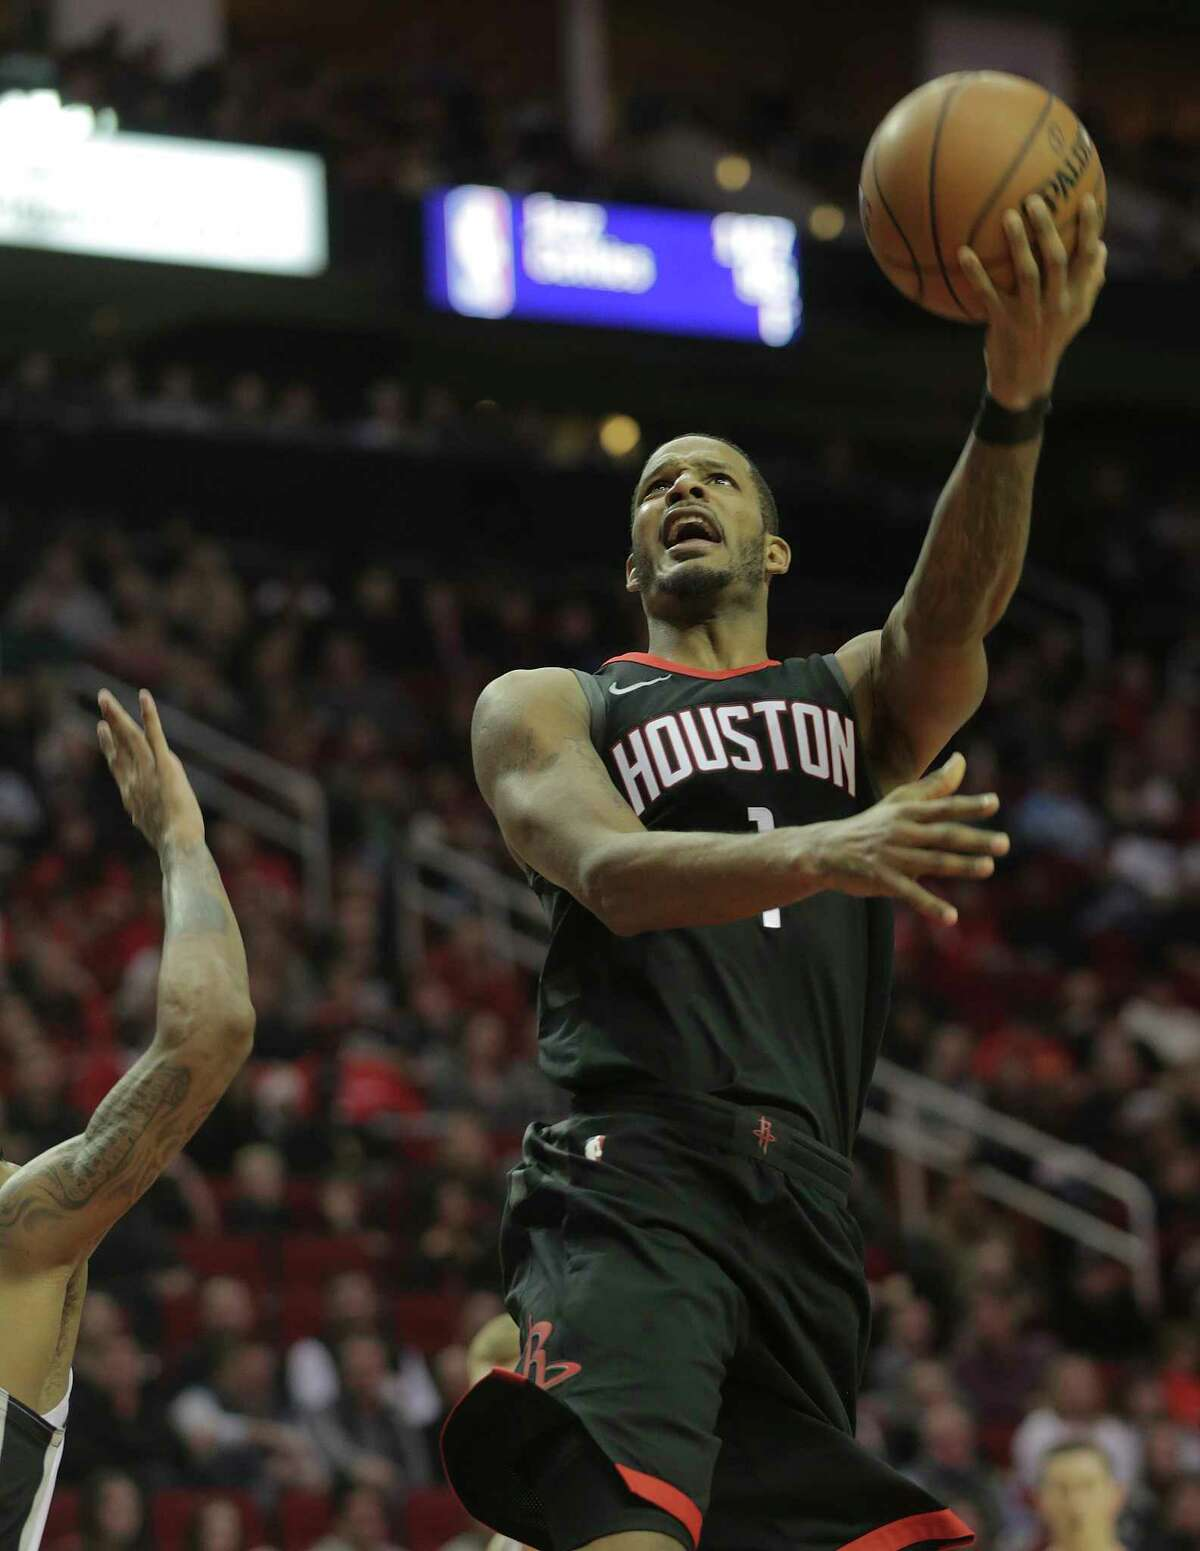 Houston Rockets forward Trevor Ariza (1) puts up two of his 11 points against the San Antonio Spurs at the Toyota Center on Friday, Dec. 15, 2017, in Houston. ( Elizabeth Conley / Houston Chronicle )